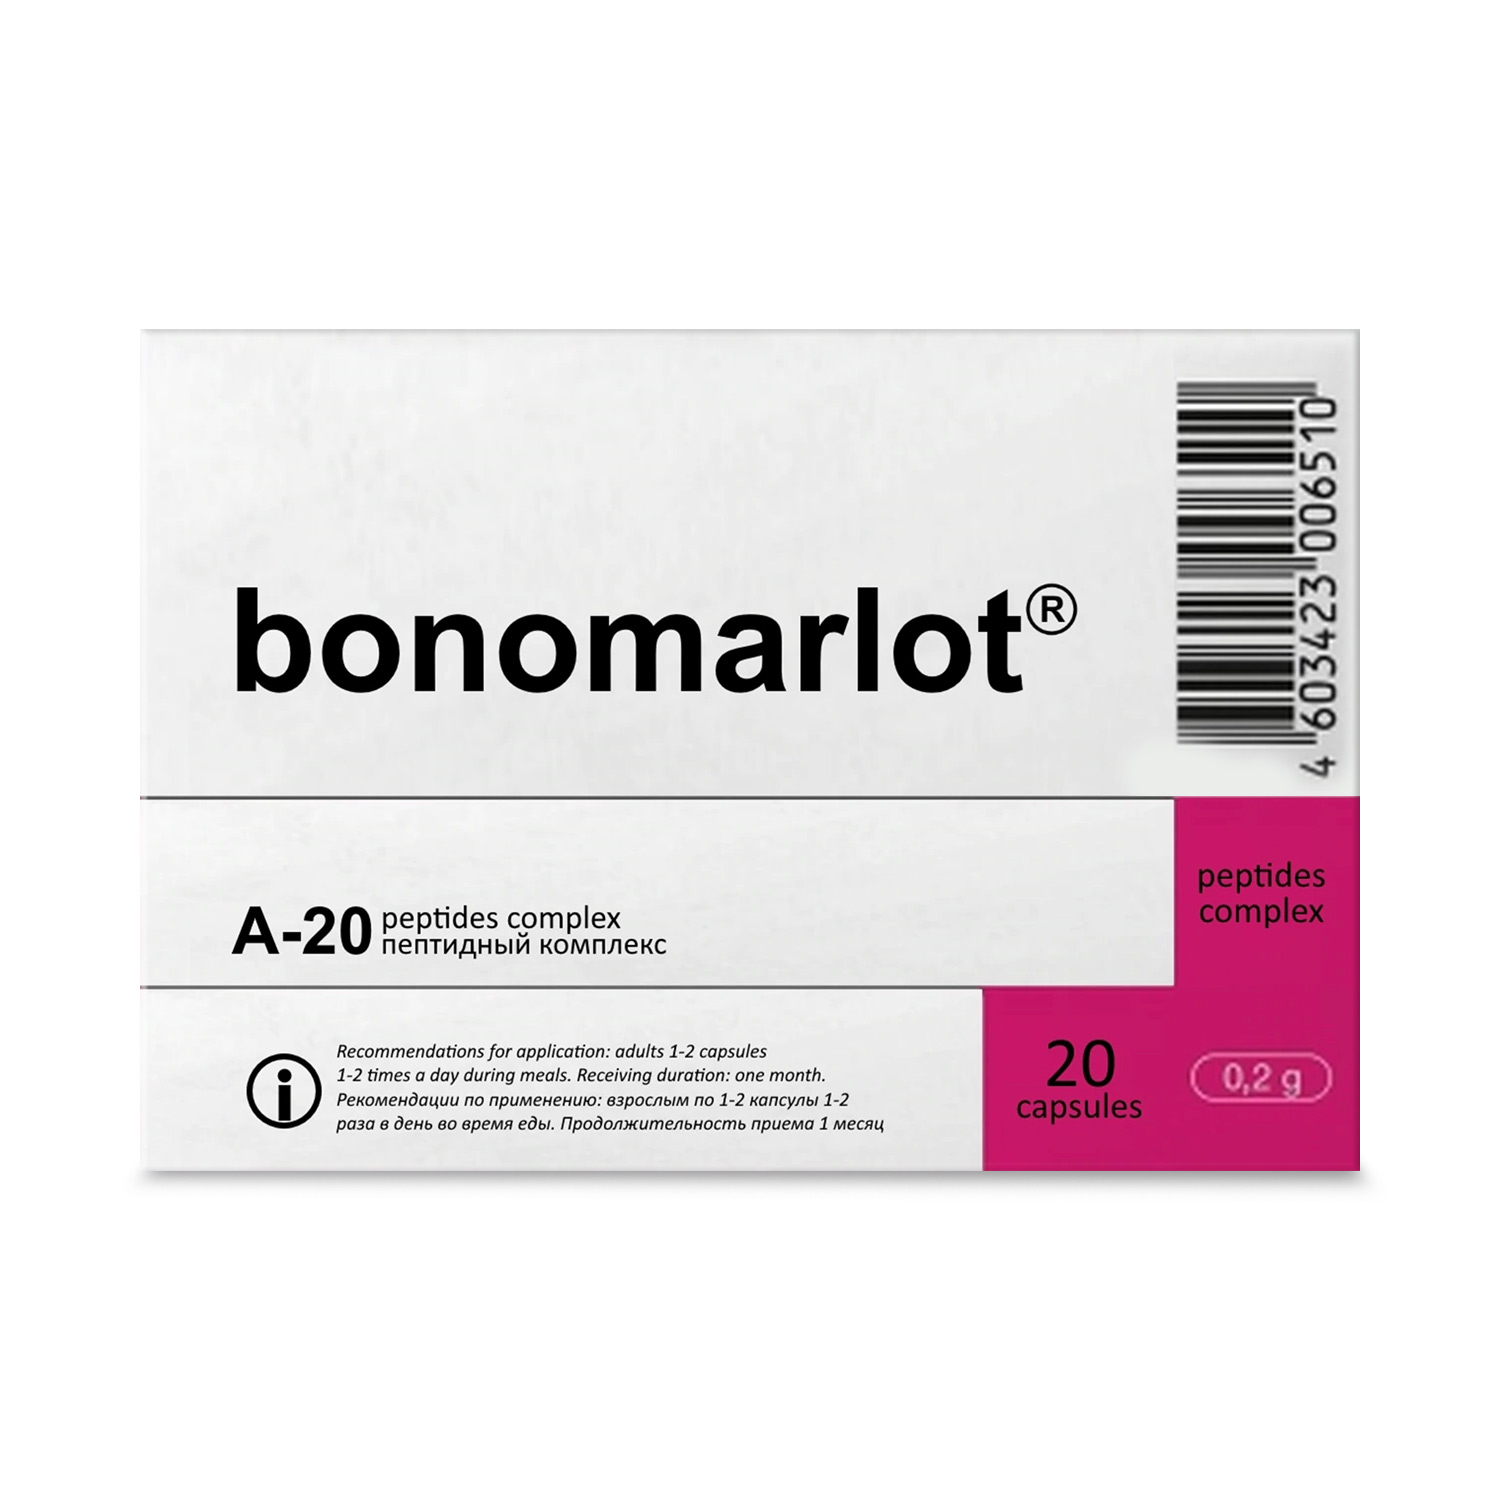 Bone Marrow Peptide ( Bonomarlot)